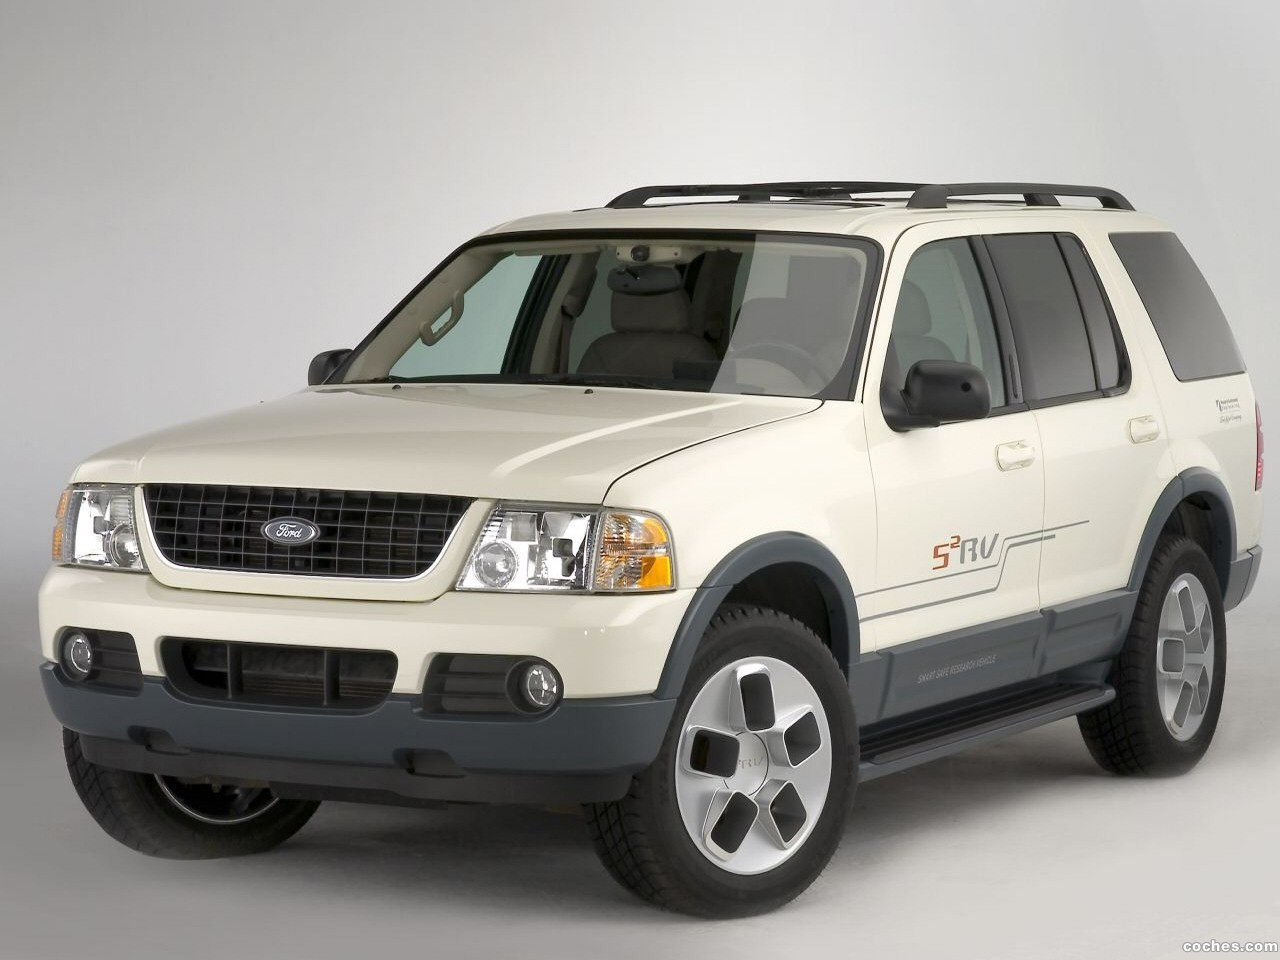 Foto 0 de Ford Explorer S2RV Smart Safe Research Vehicle 2003